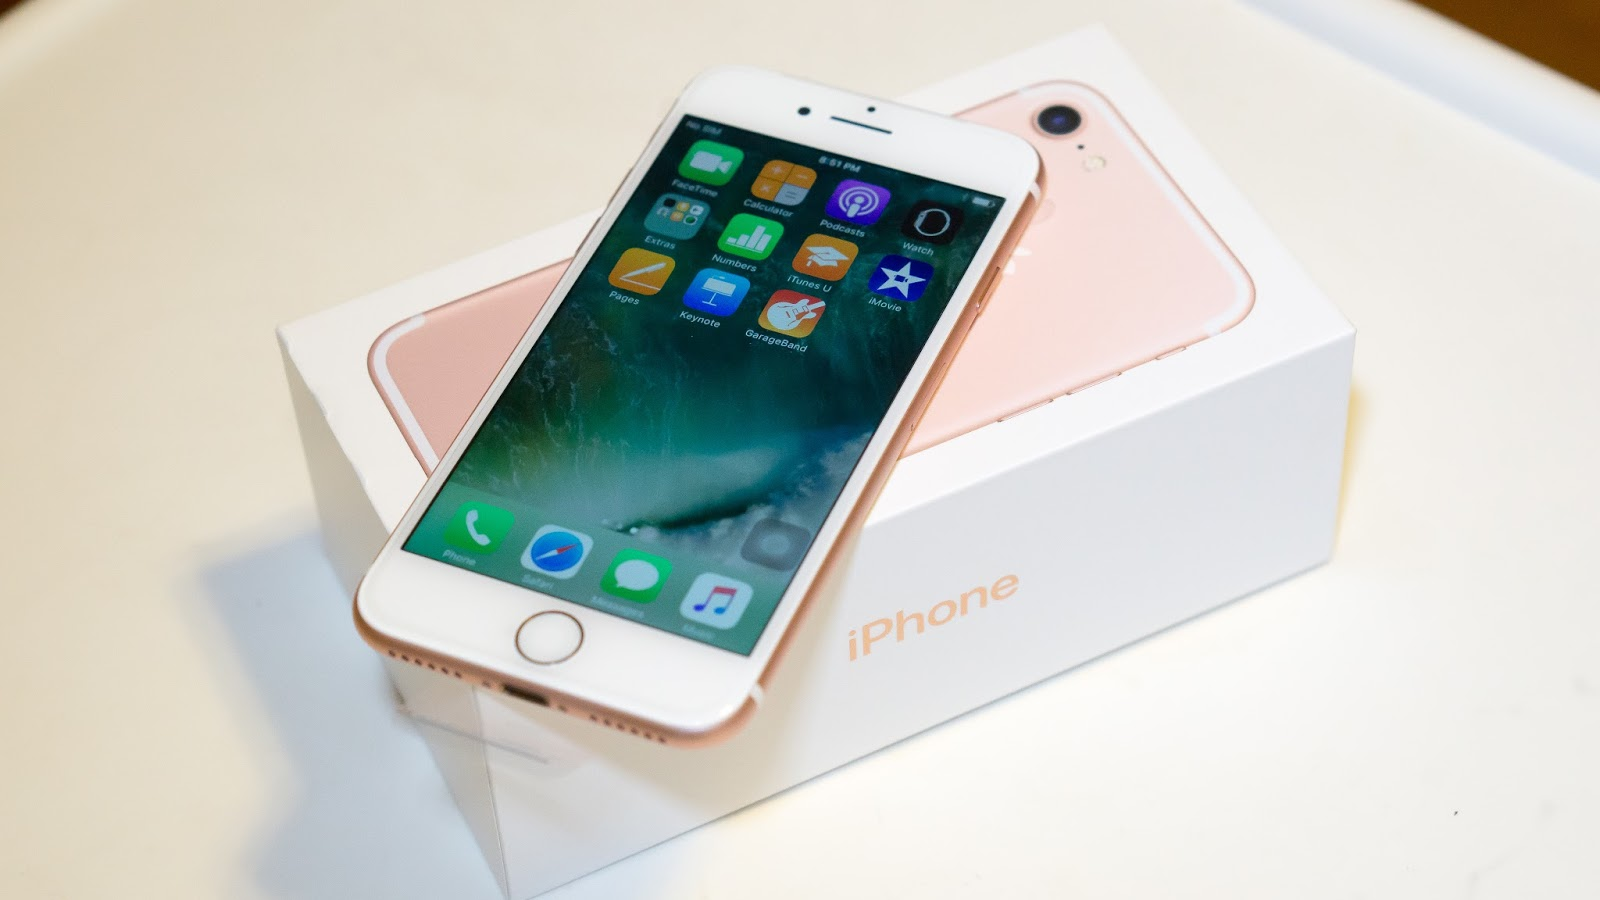 Unboxing my iPhone 7, Rose Gold with 128GB Memory Storage